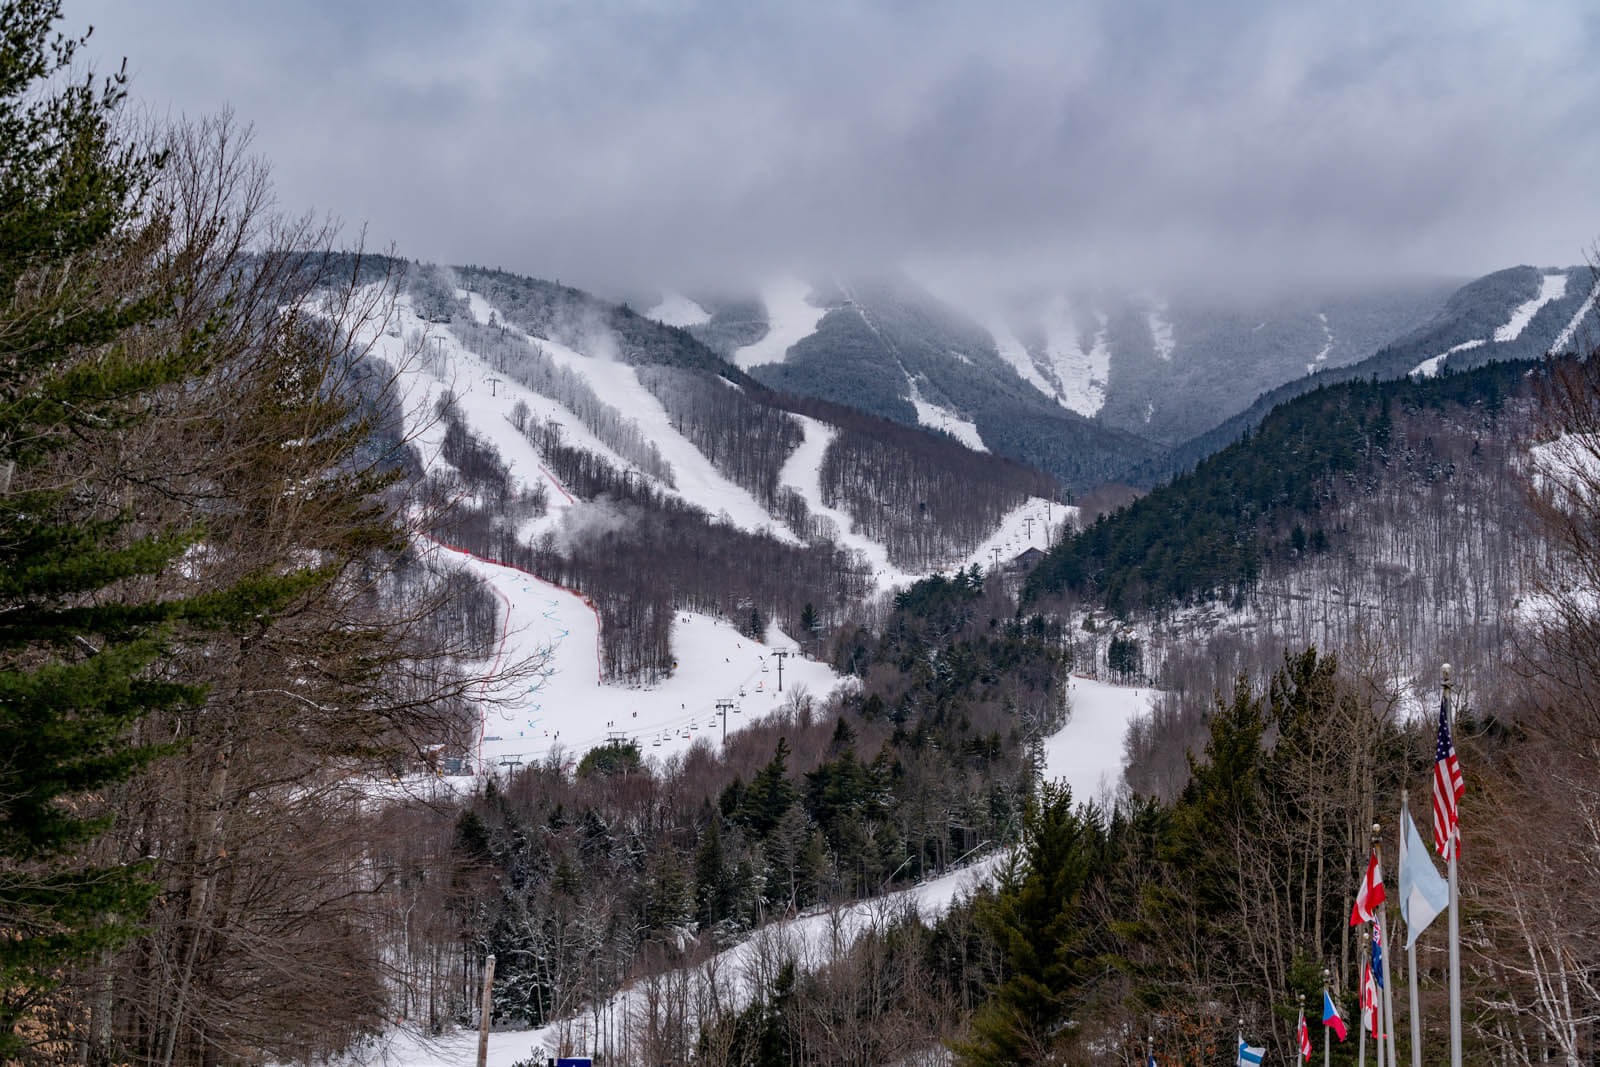 White Face Mountain ski resort near Lake Placid in the Adirondacks in New York